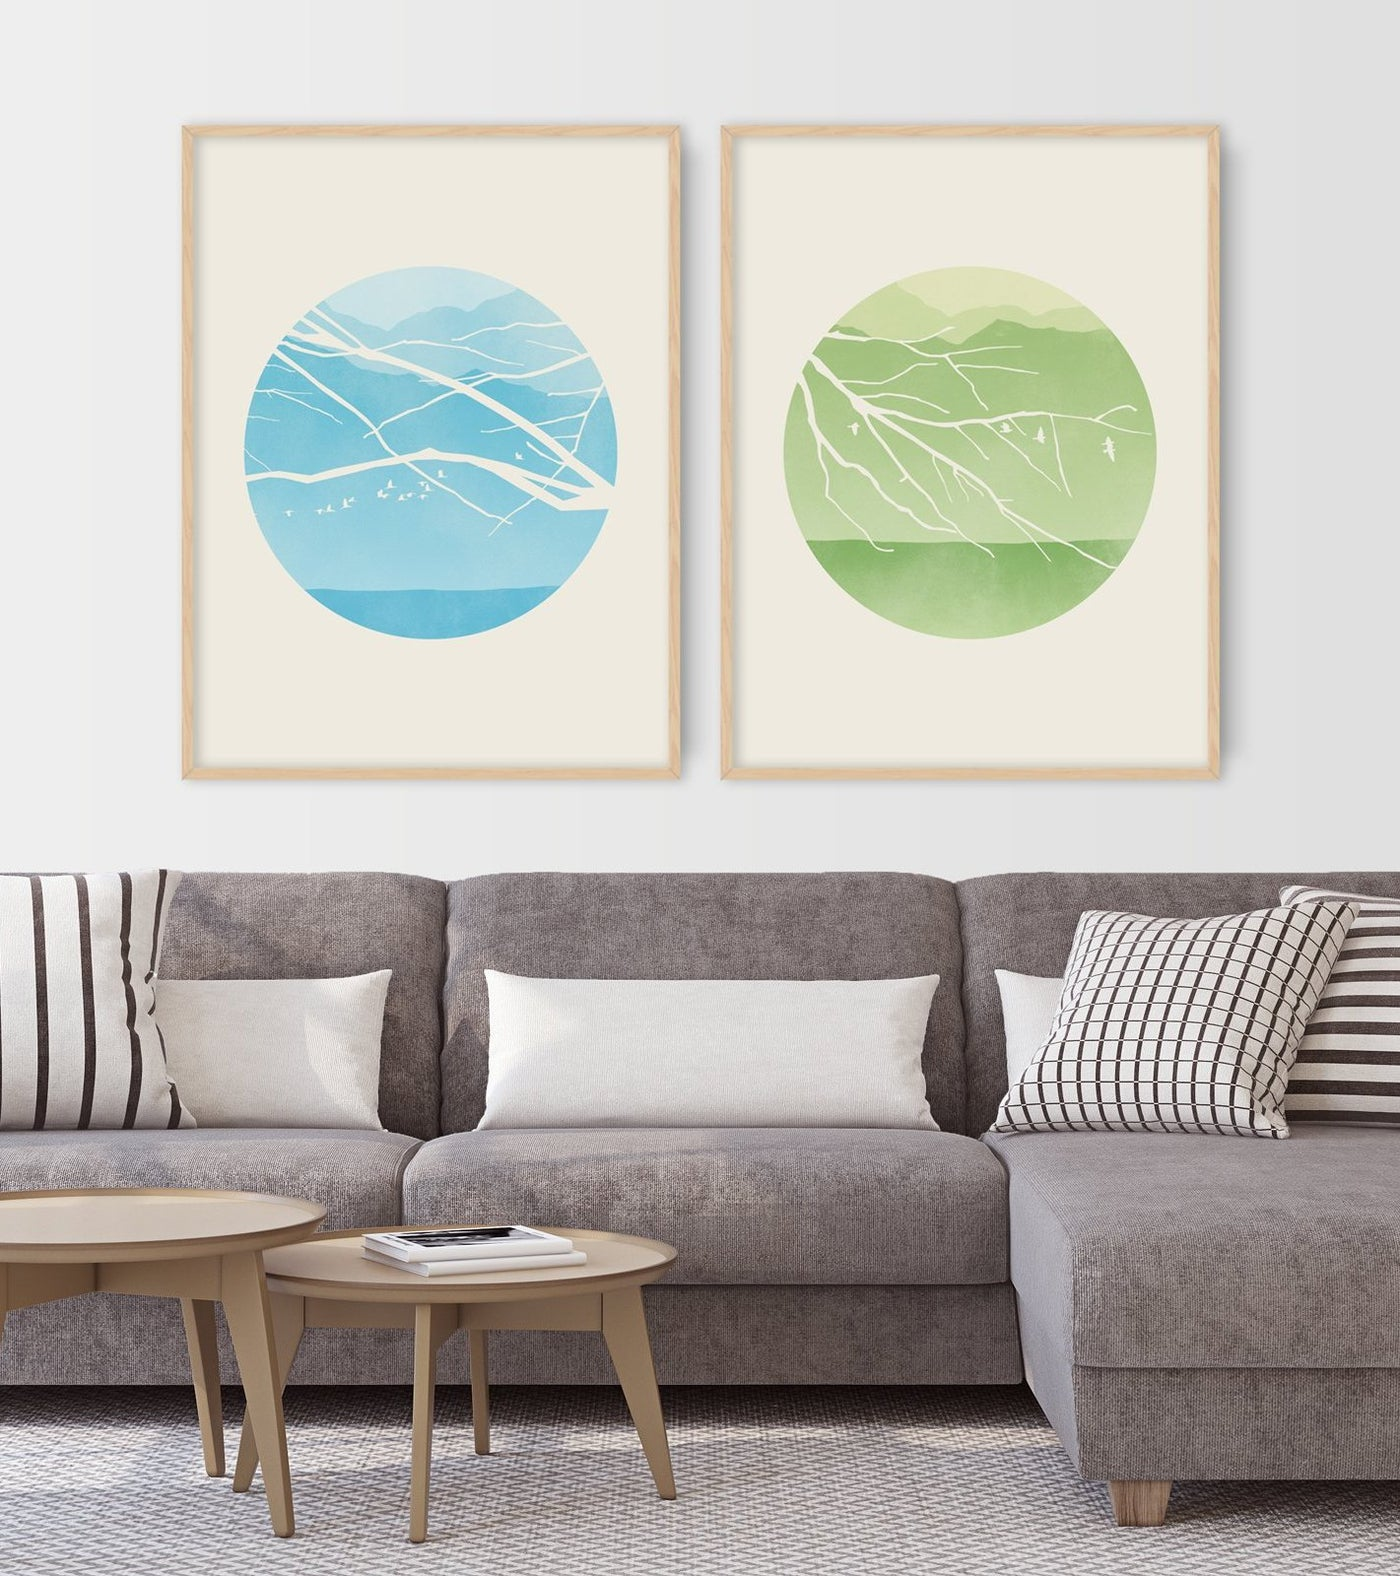 Spring - Wall Art Set of 2 Prints